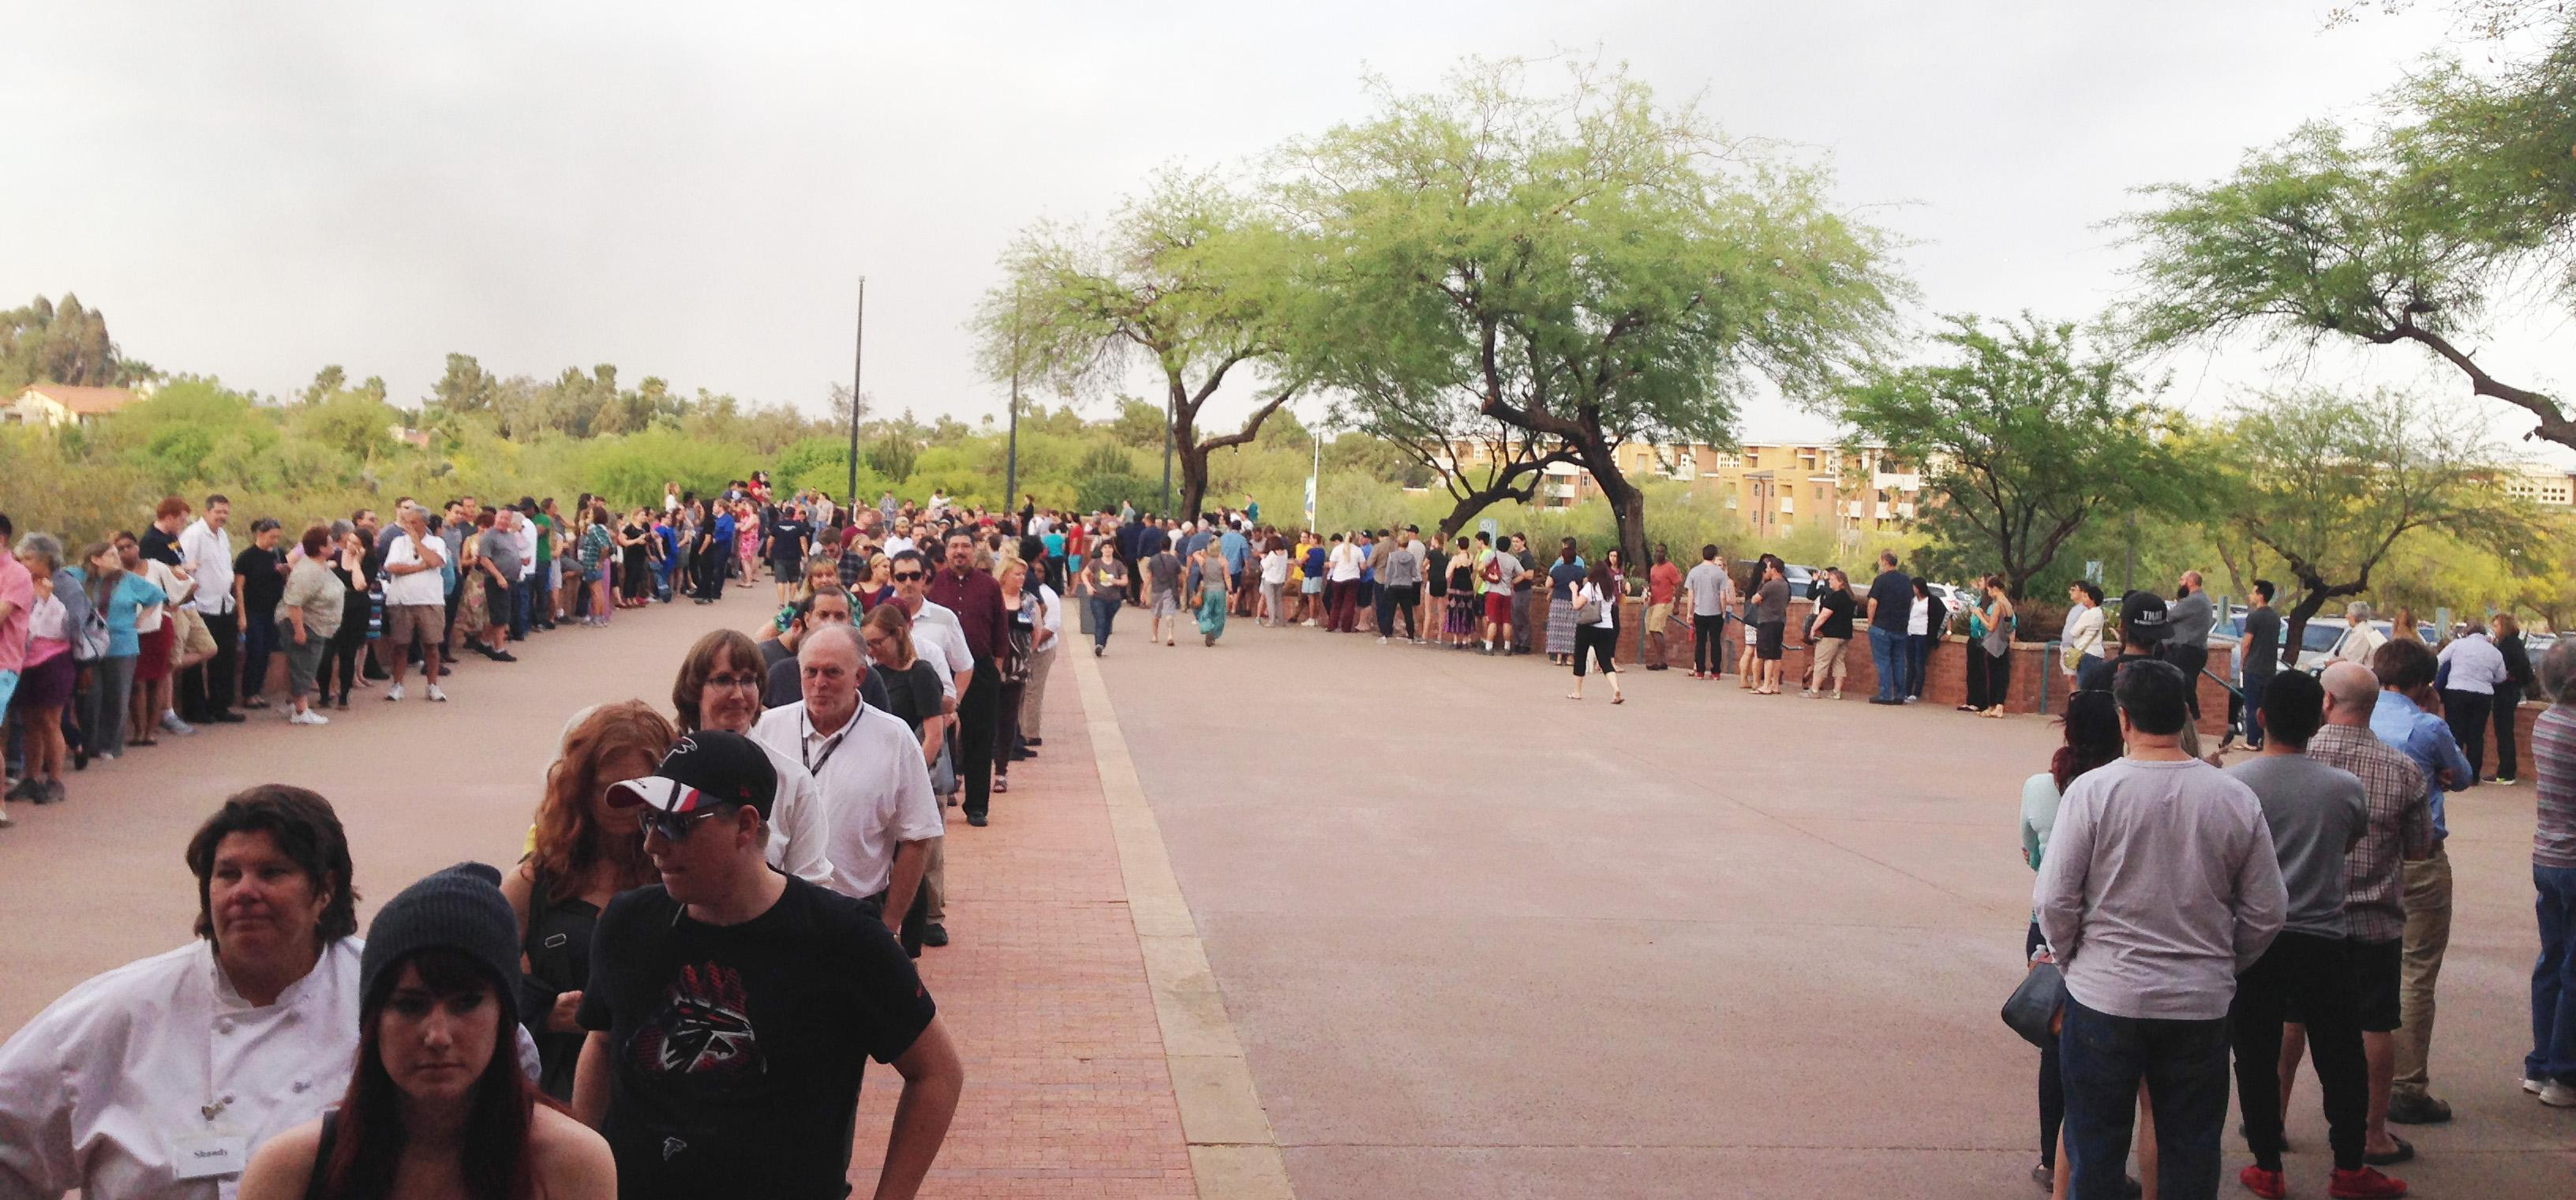 polling place in Papago Park